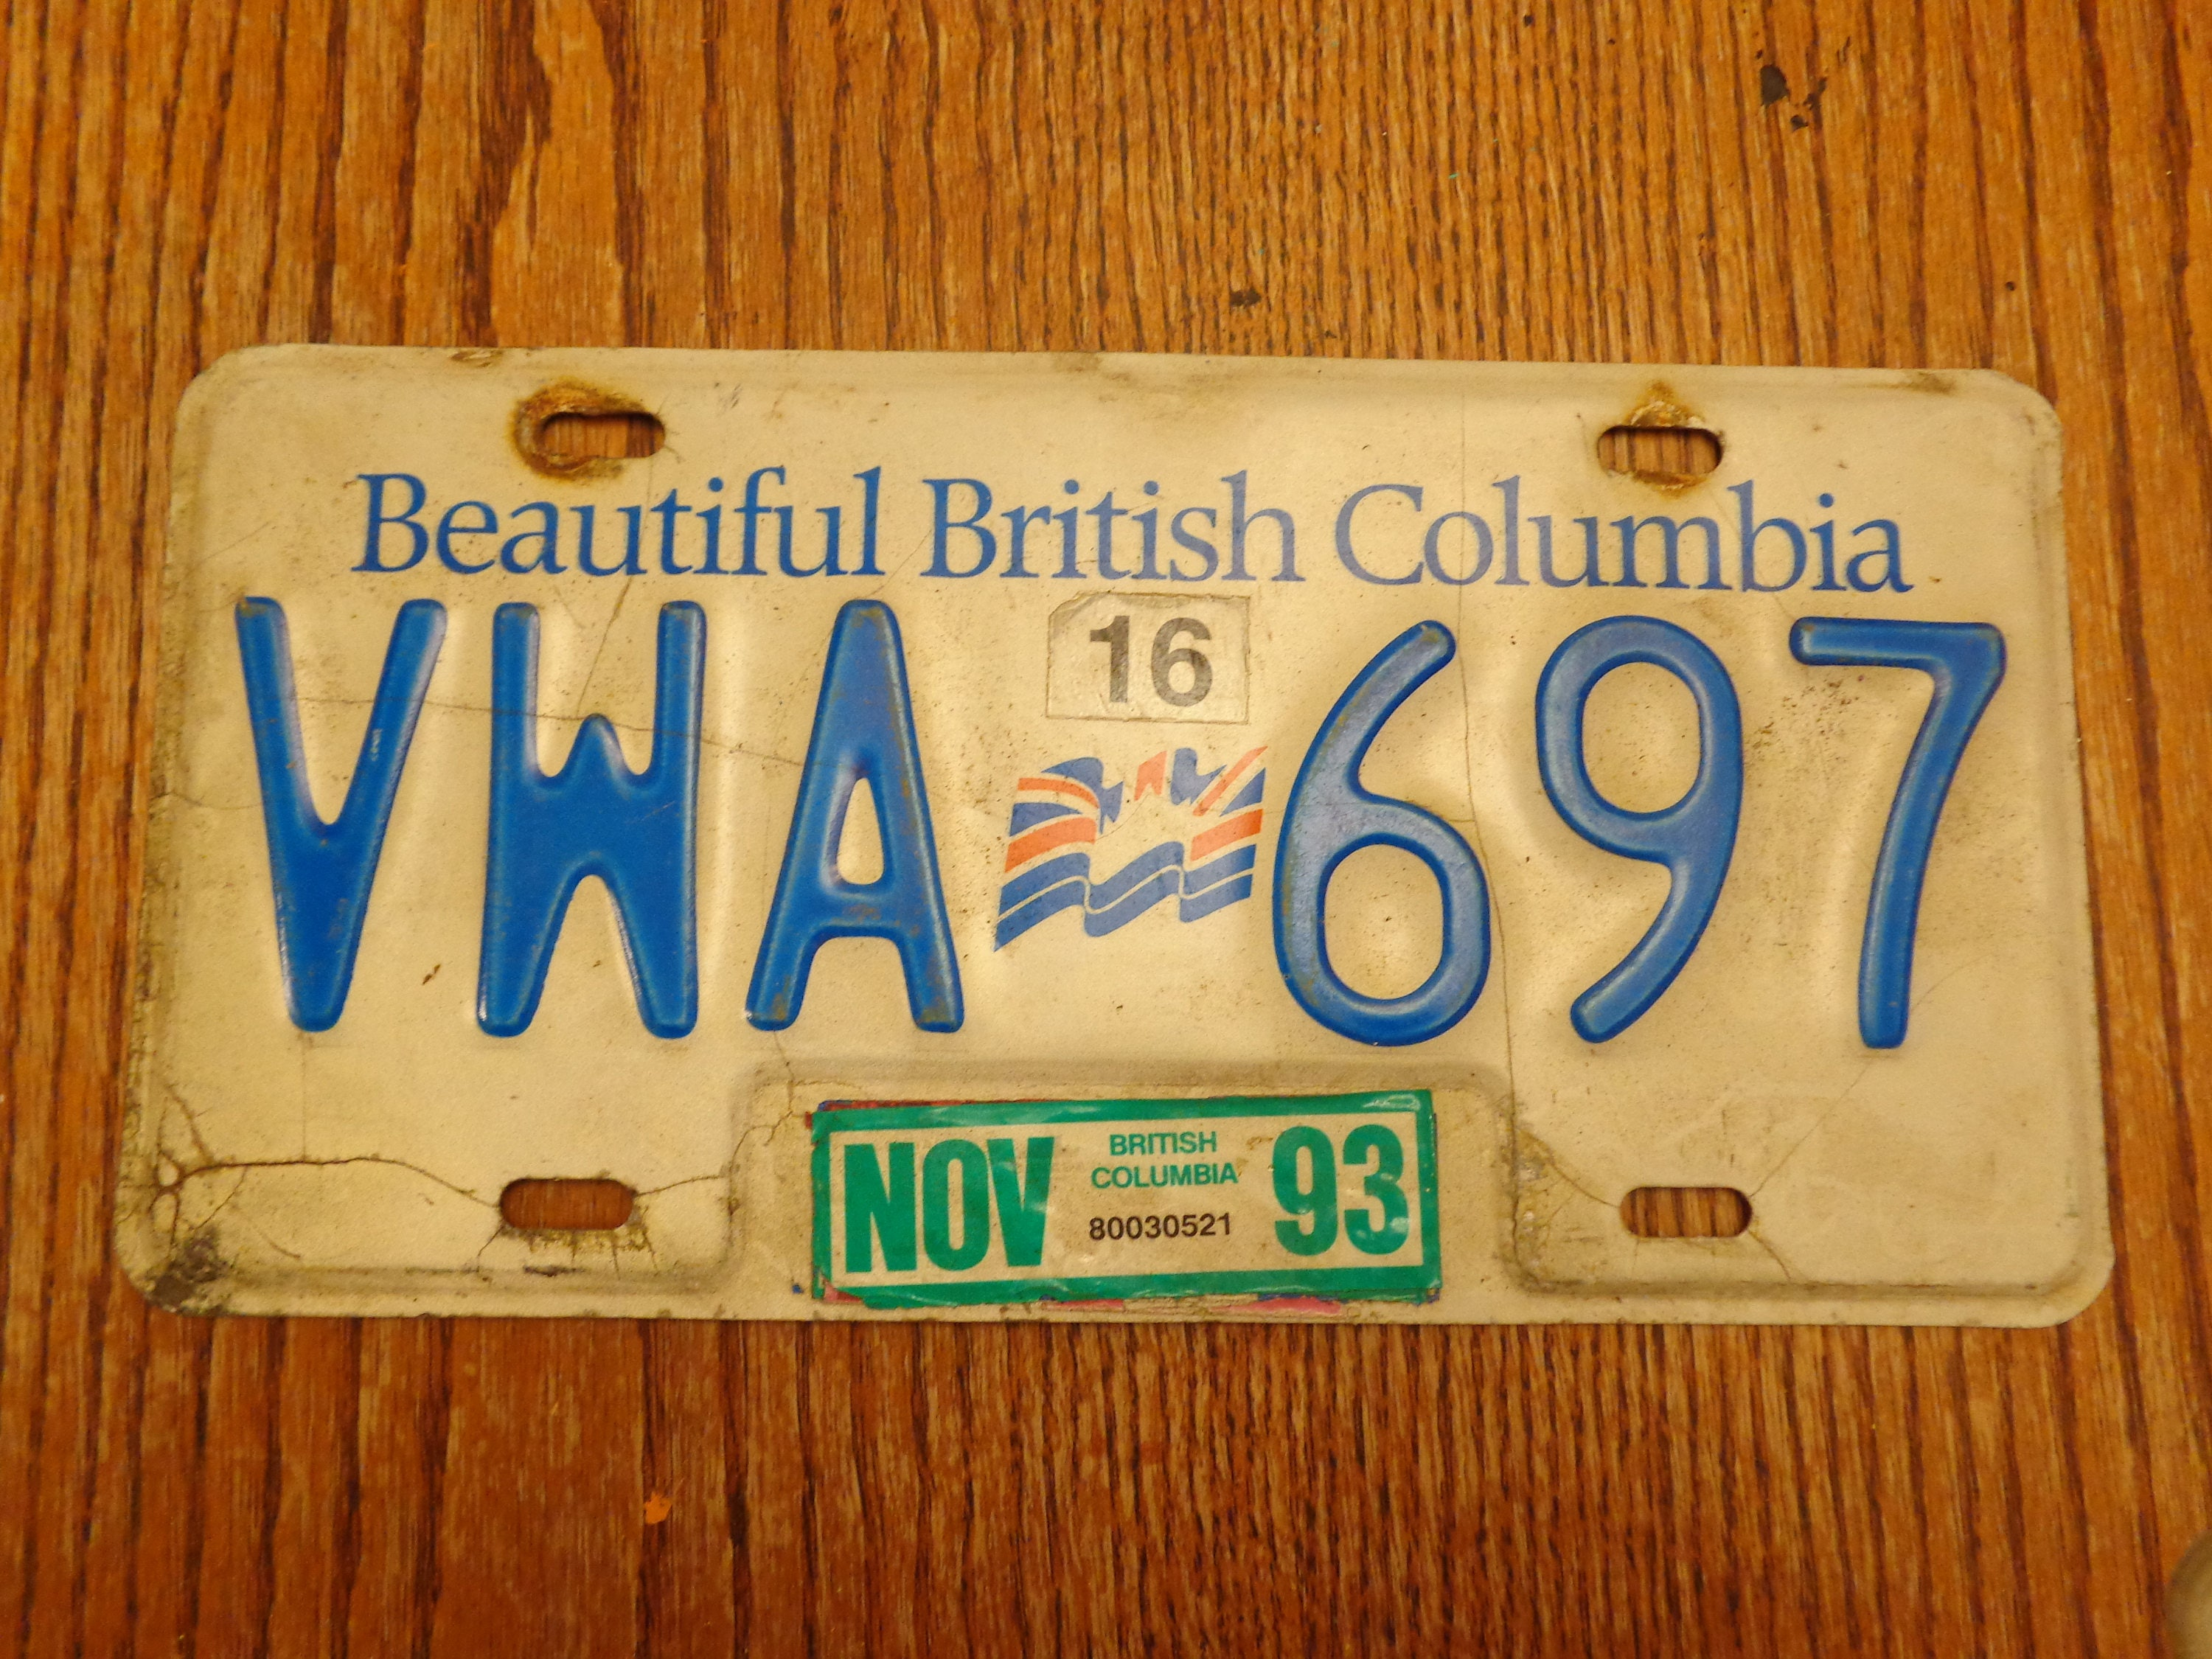 Vintage License Plate British Columbia Old License Plate